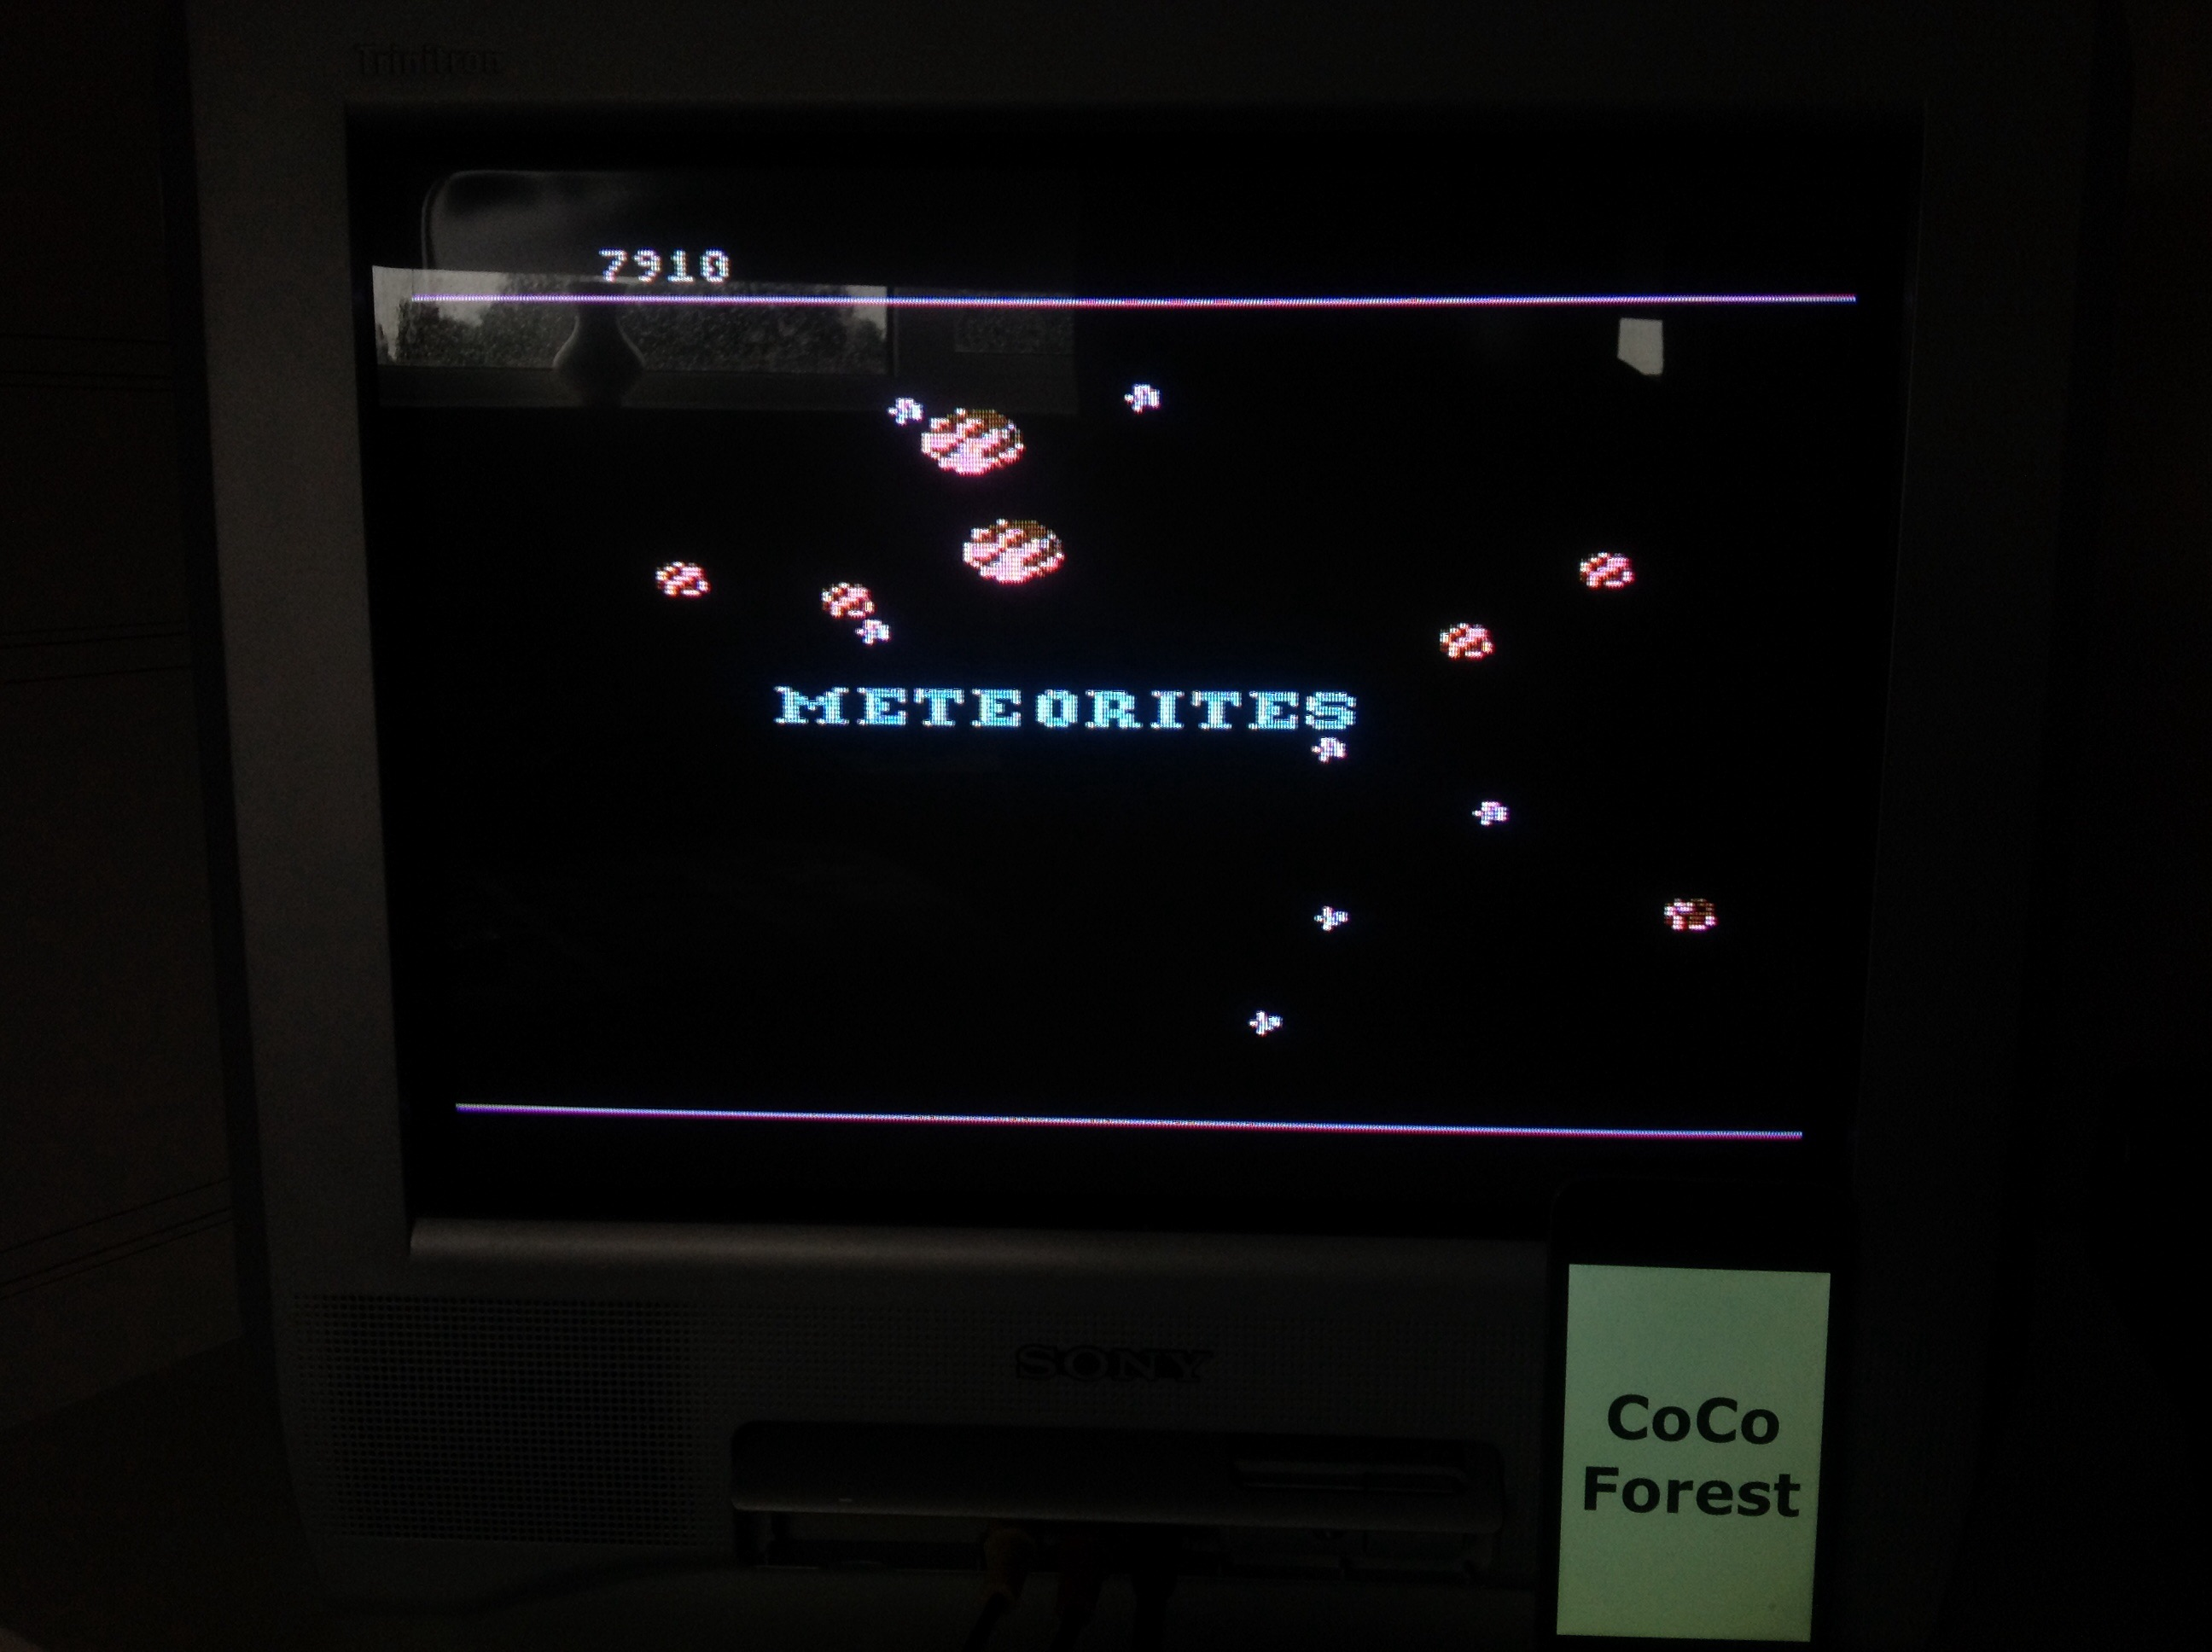 CoCoForest: Meteorites (Atari 5200) 7,910 points on 2015-08-19 10:36:58